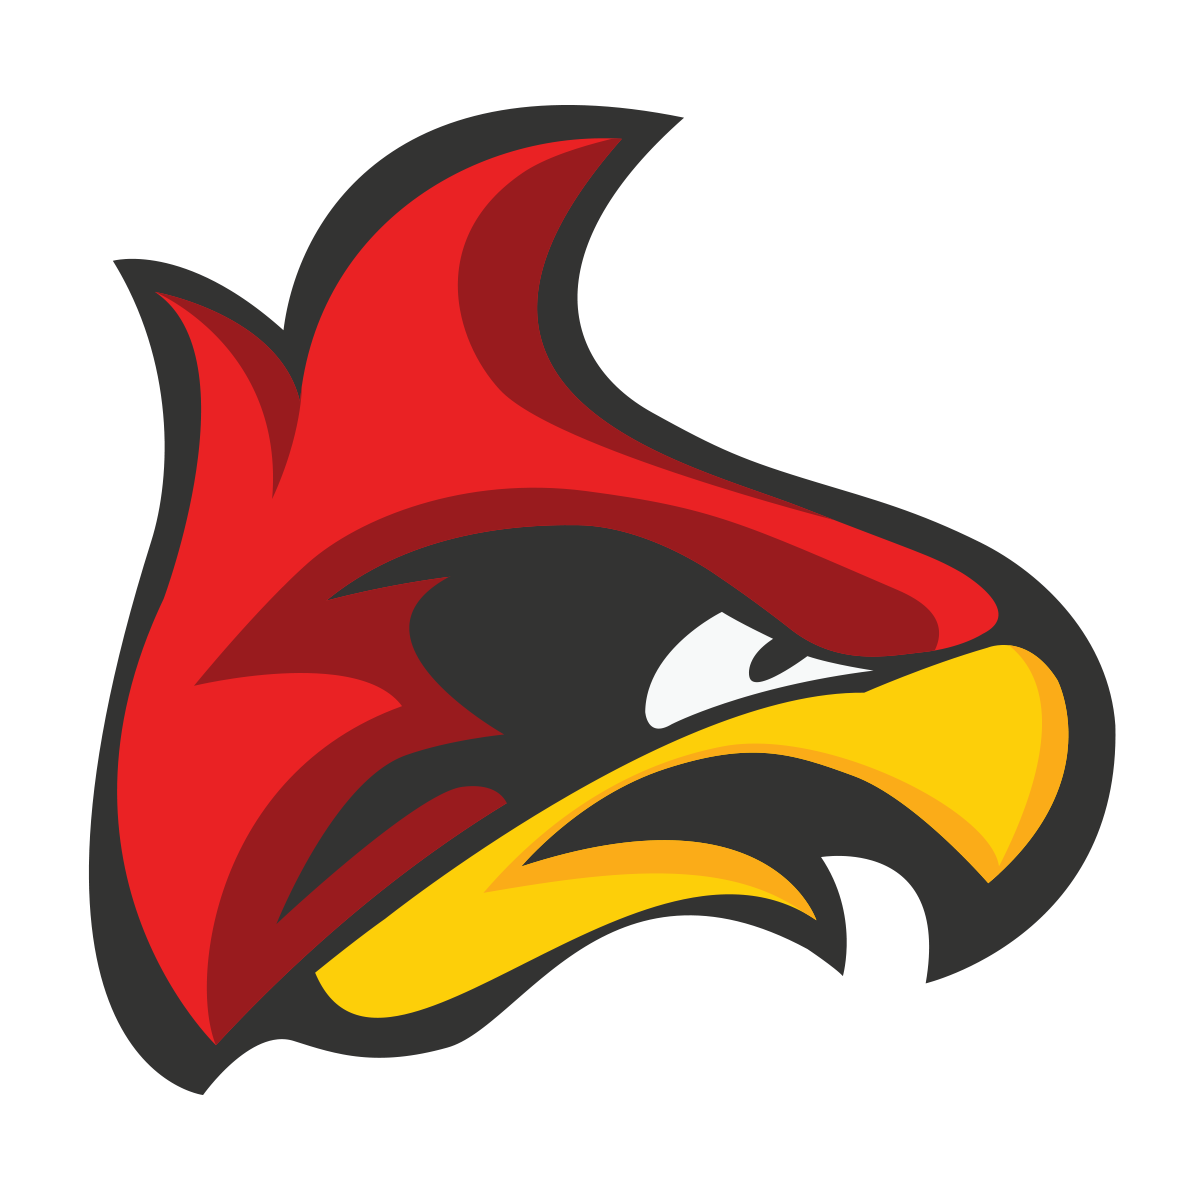 Cardinals logo nfl png. Cards wire get the